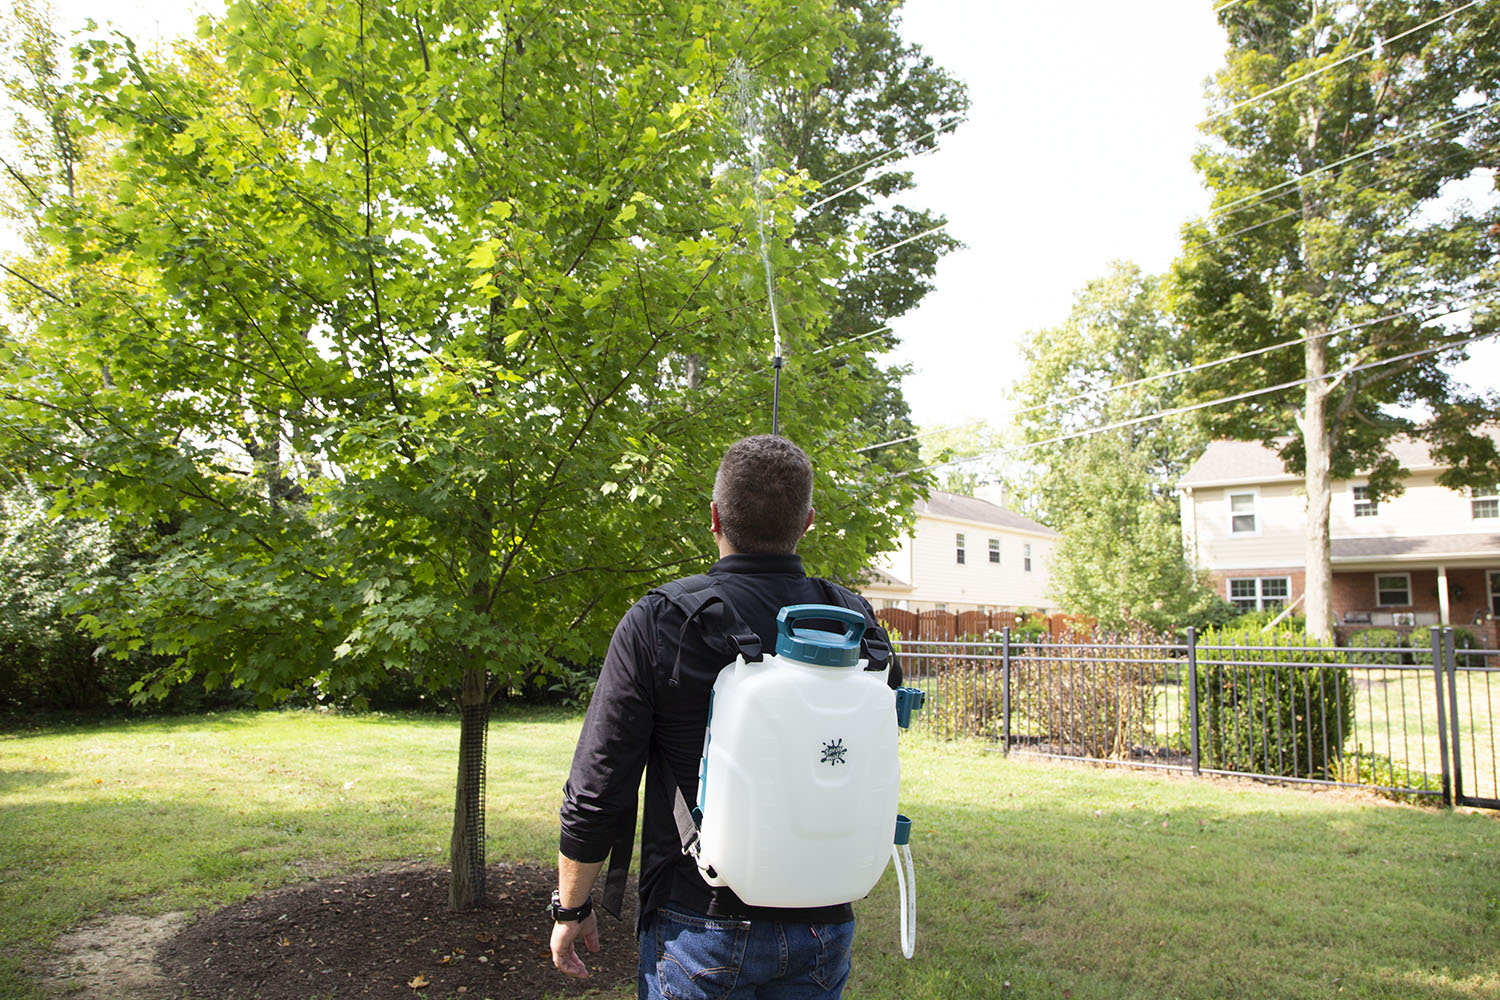 Man spraying a tree with a SprayMate Storm battery powered backpack sprayer